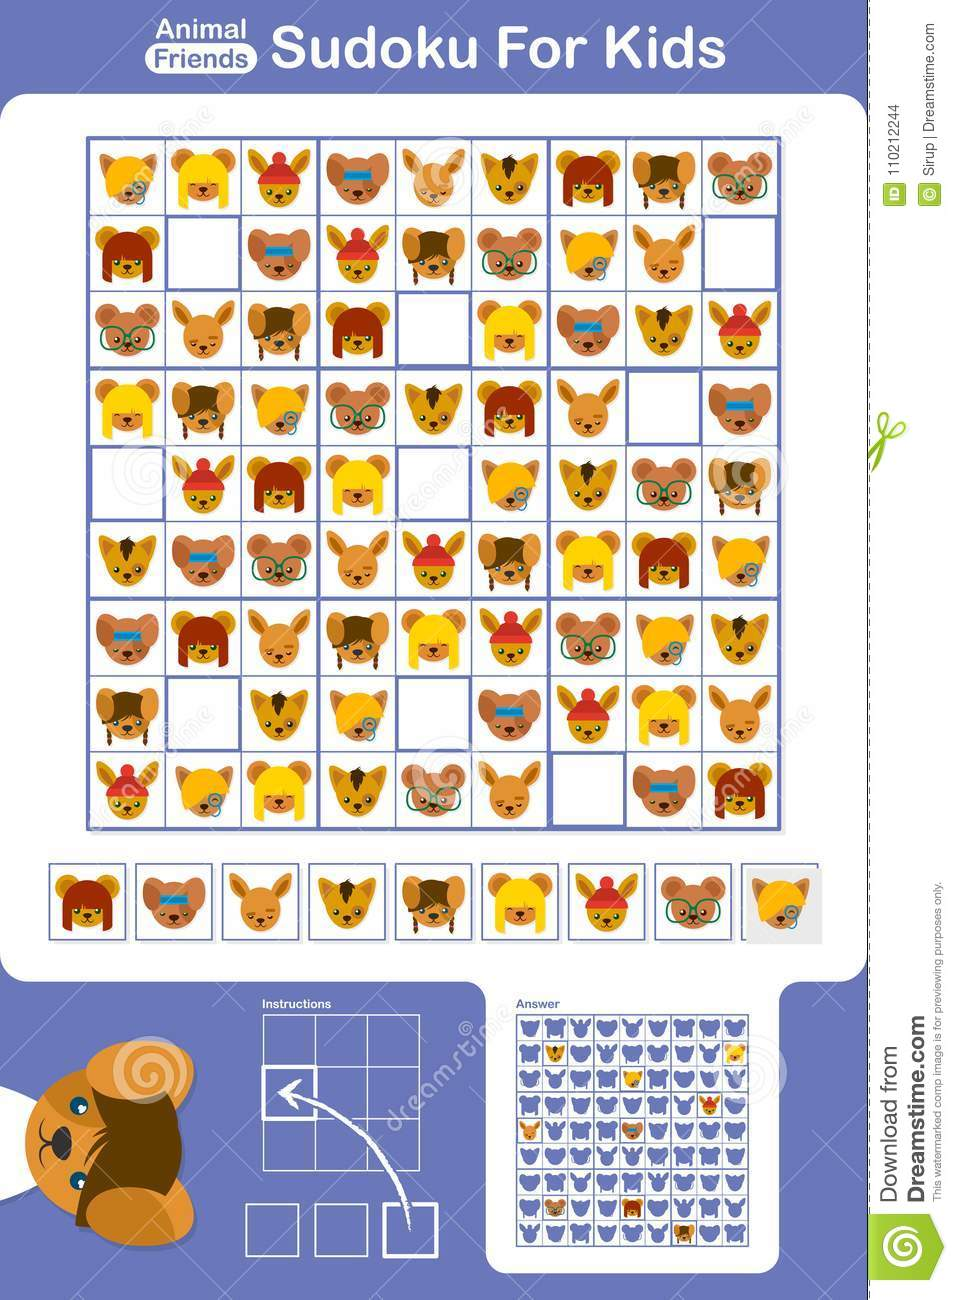 photograph about Sudoku for Kids Printable known as Sudoku Puzzle Grid For Children With Cartoon Pets Inventory